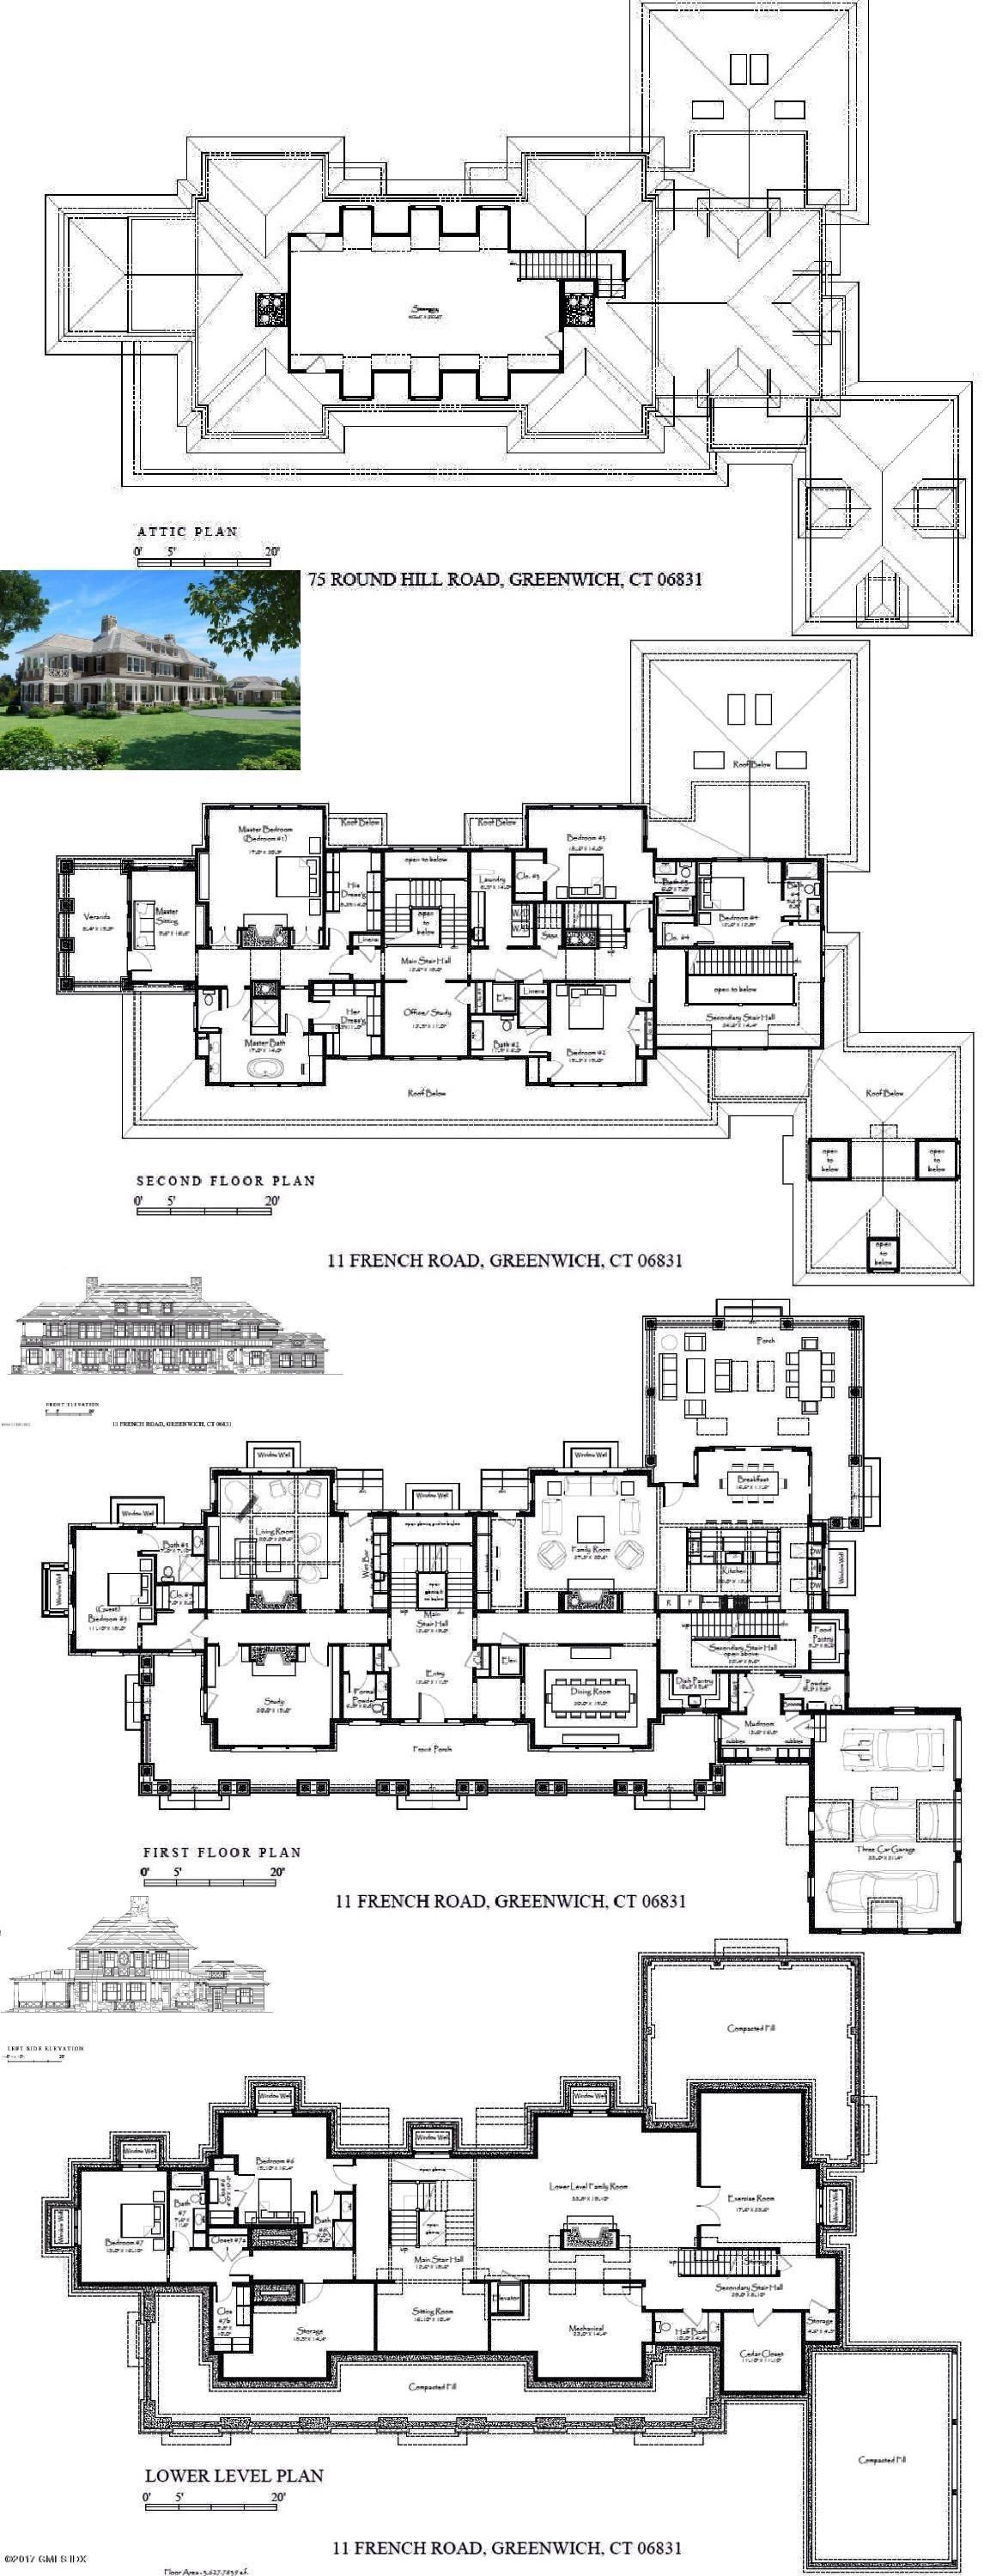 Pin By Takeshi Asahina On Floorplan In 2020 Architectural Design House Plans Home Design Floor Plans Luxury House Plans